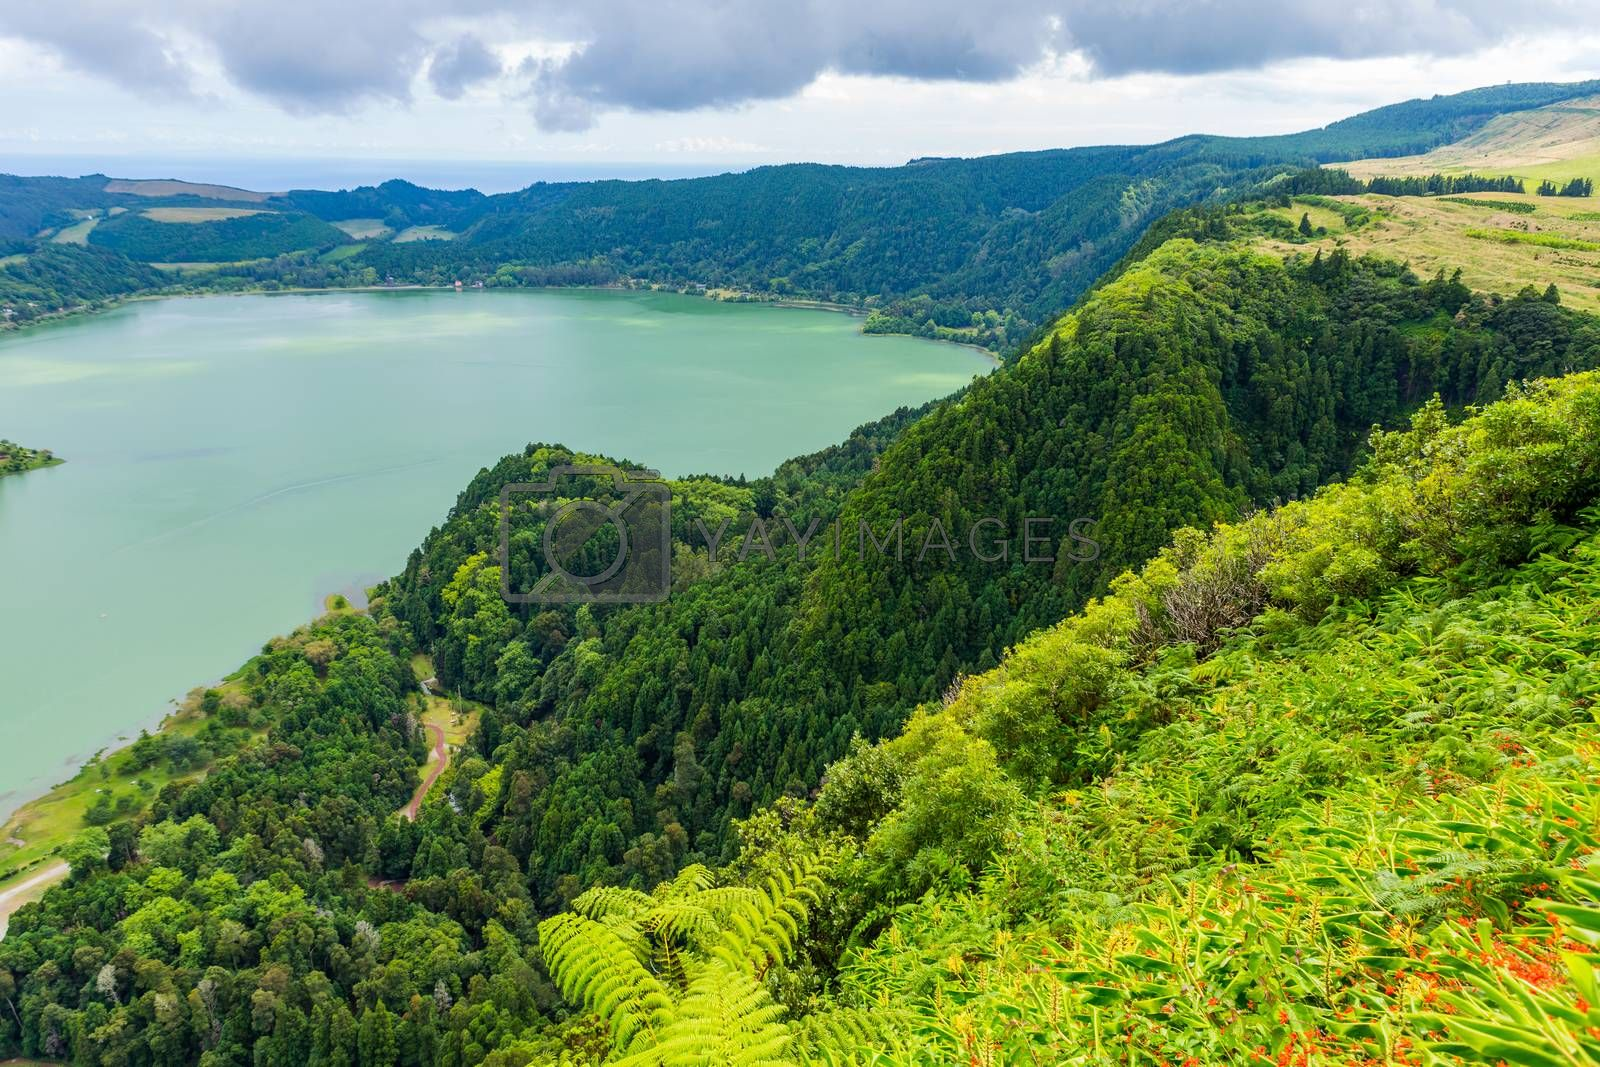 Royalty free image of Pico do Ferro by zittto